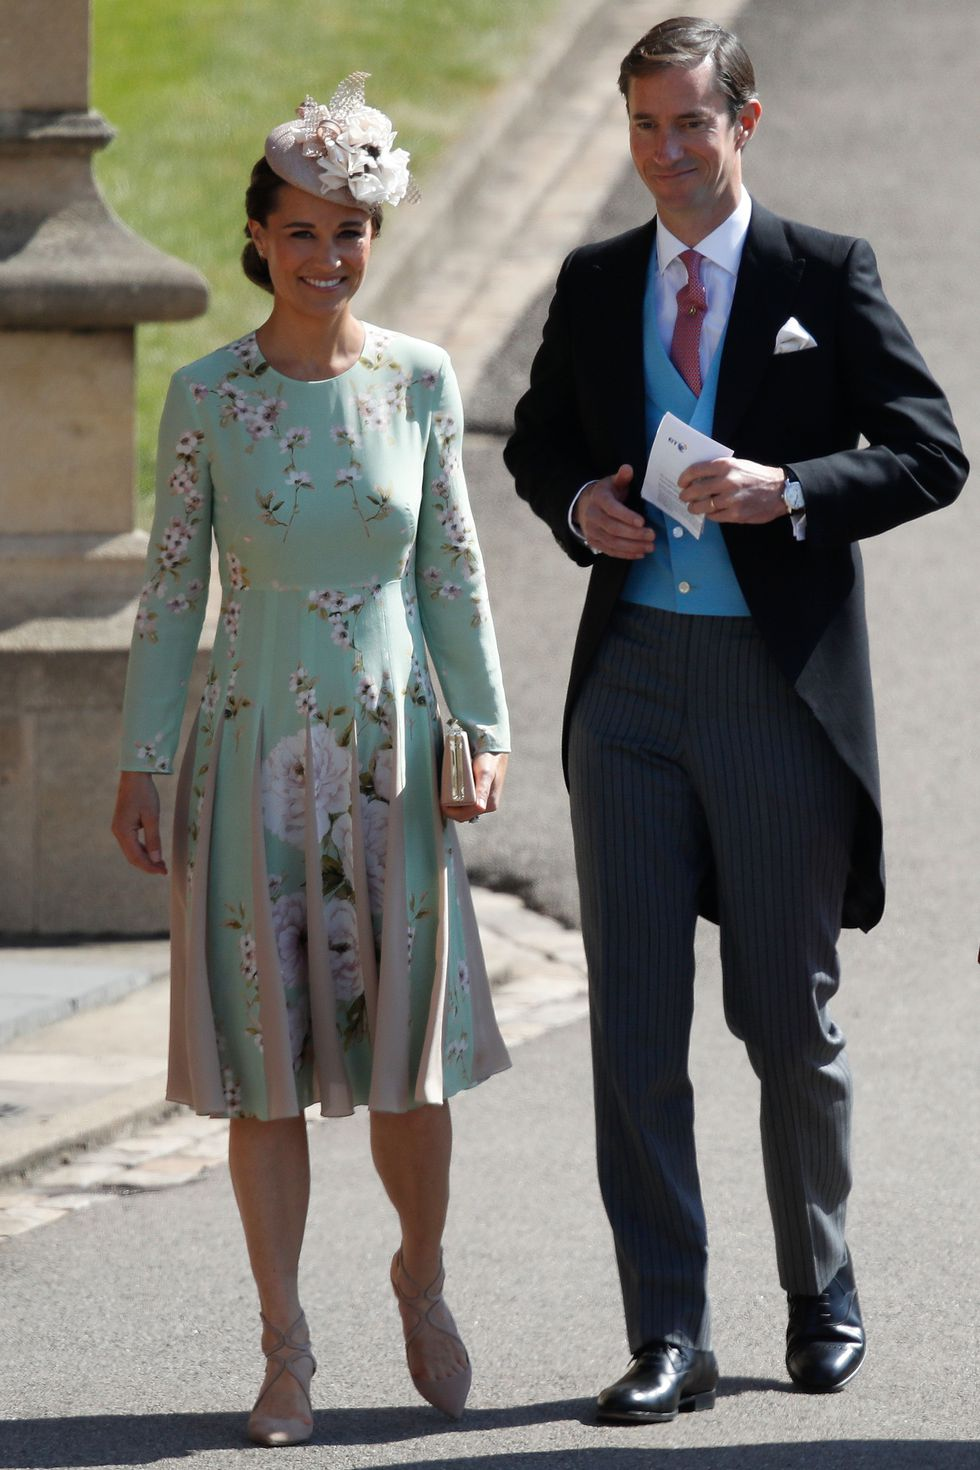 Pippa Middleton and James Matthers